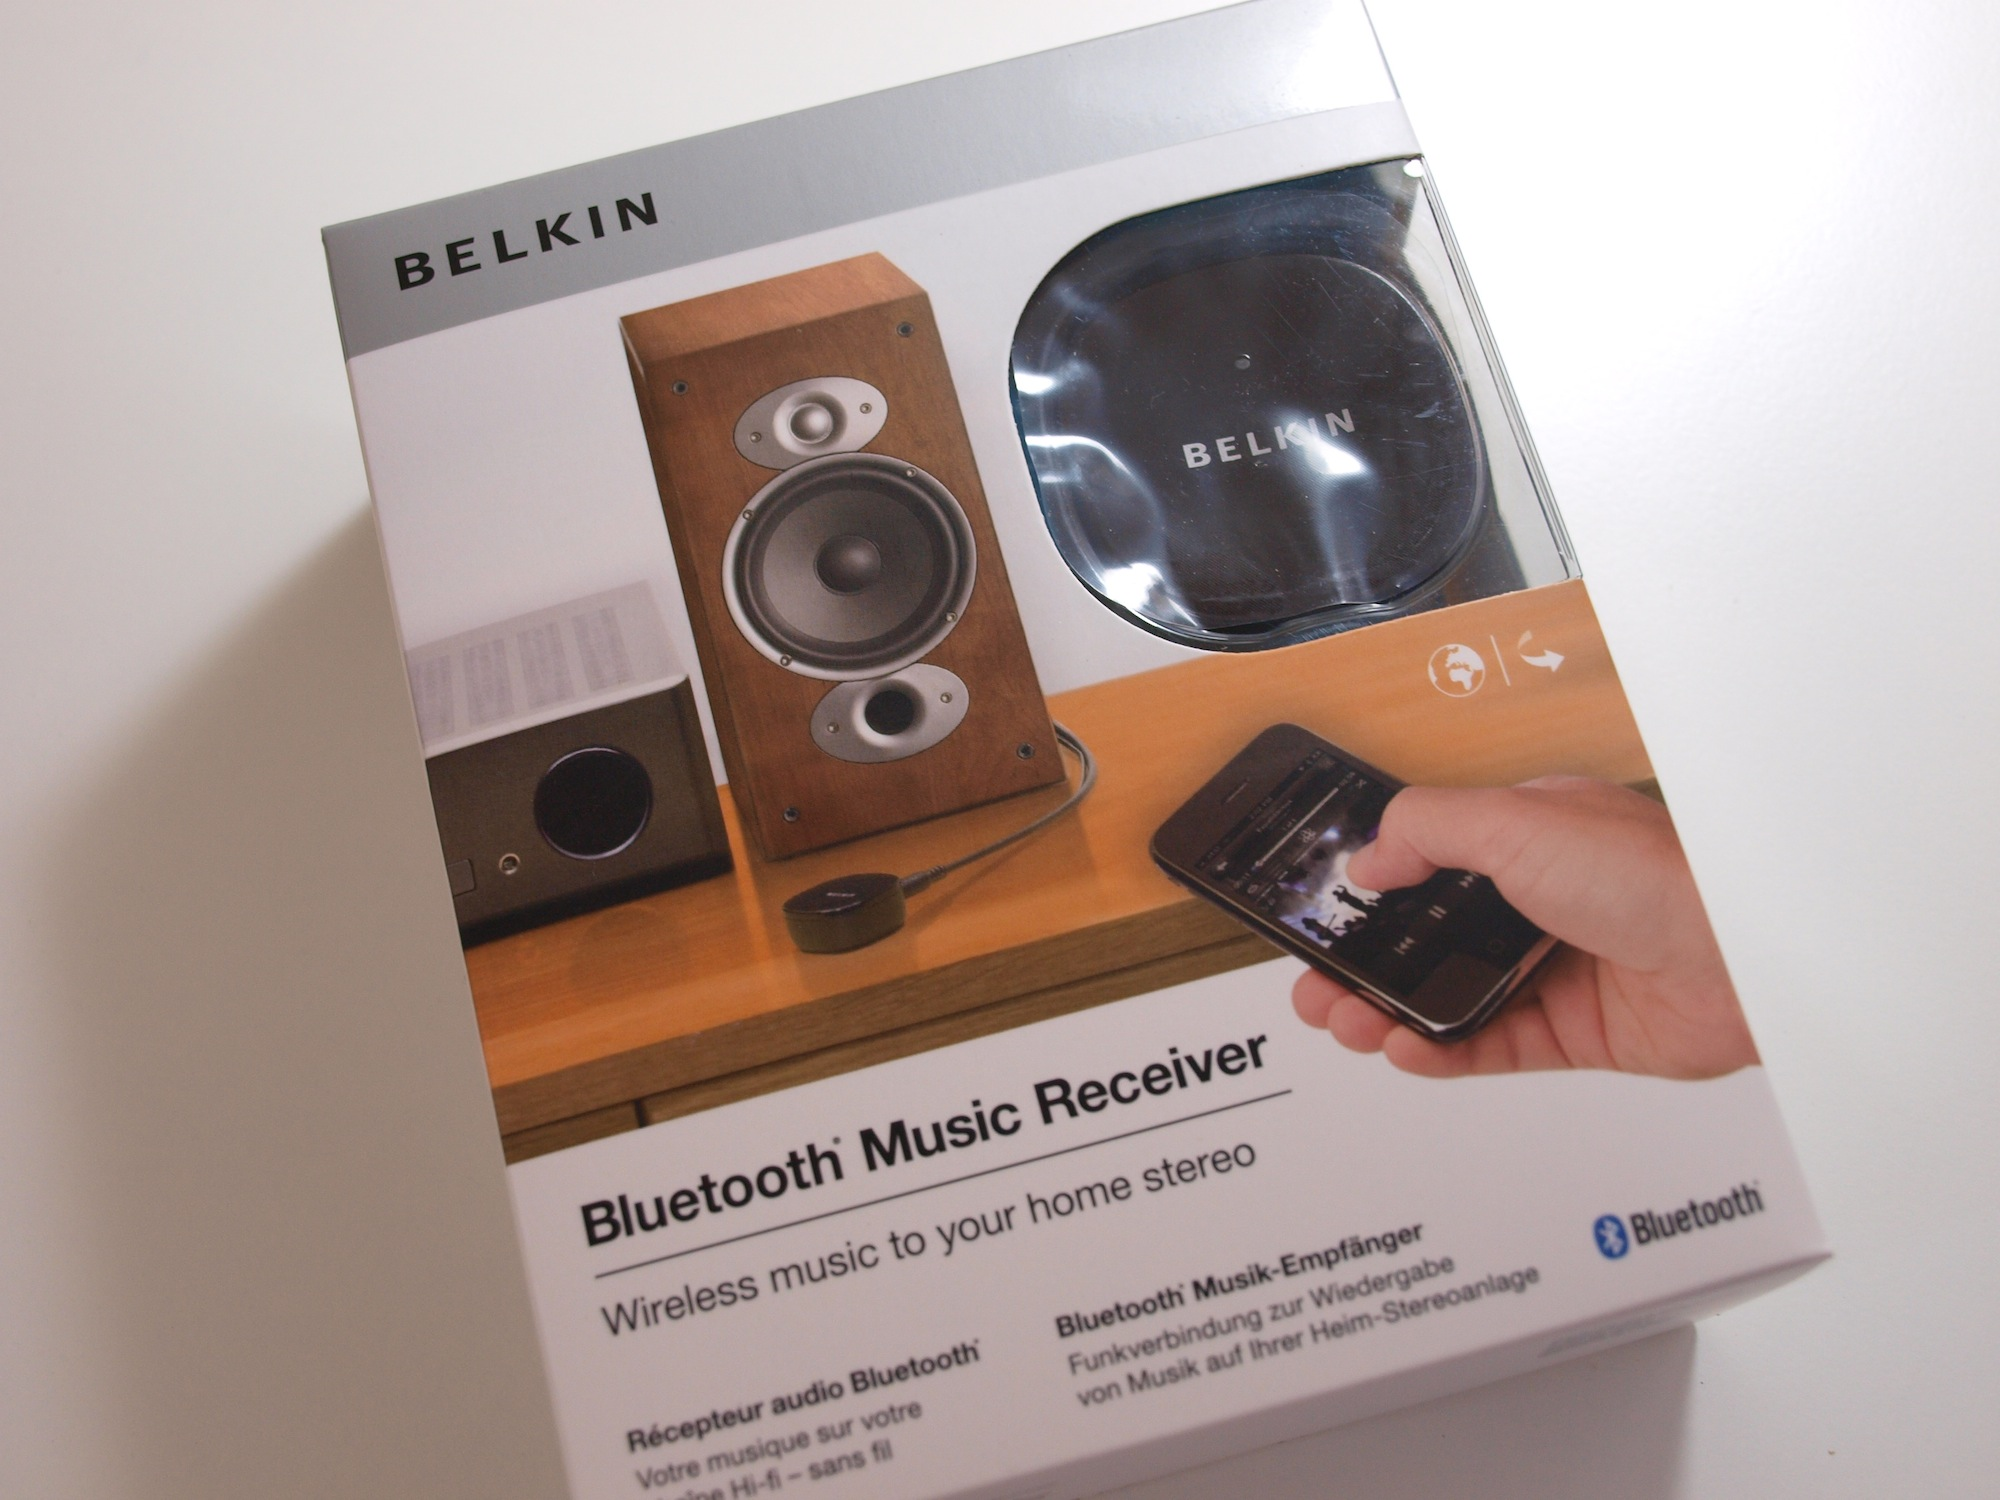 Belkin Bluetooth iphone